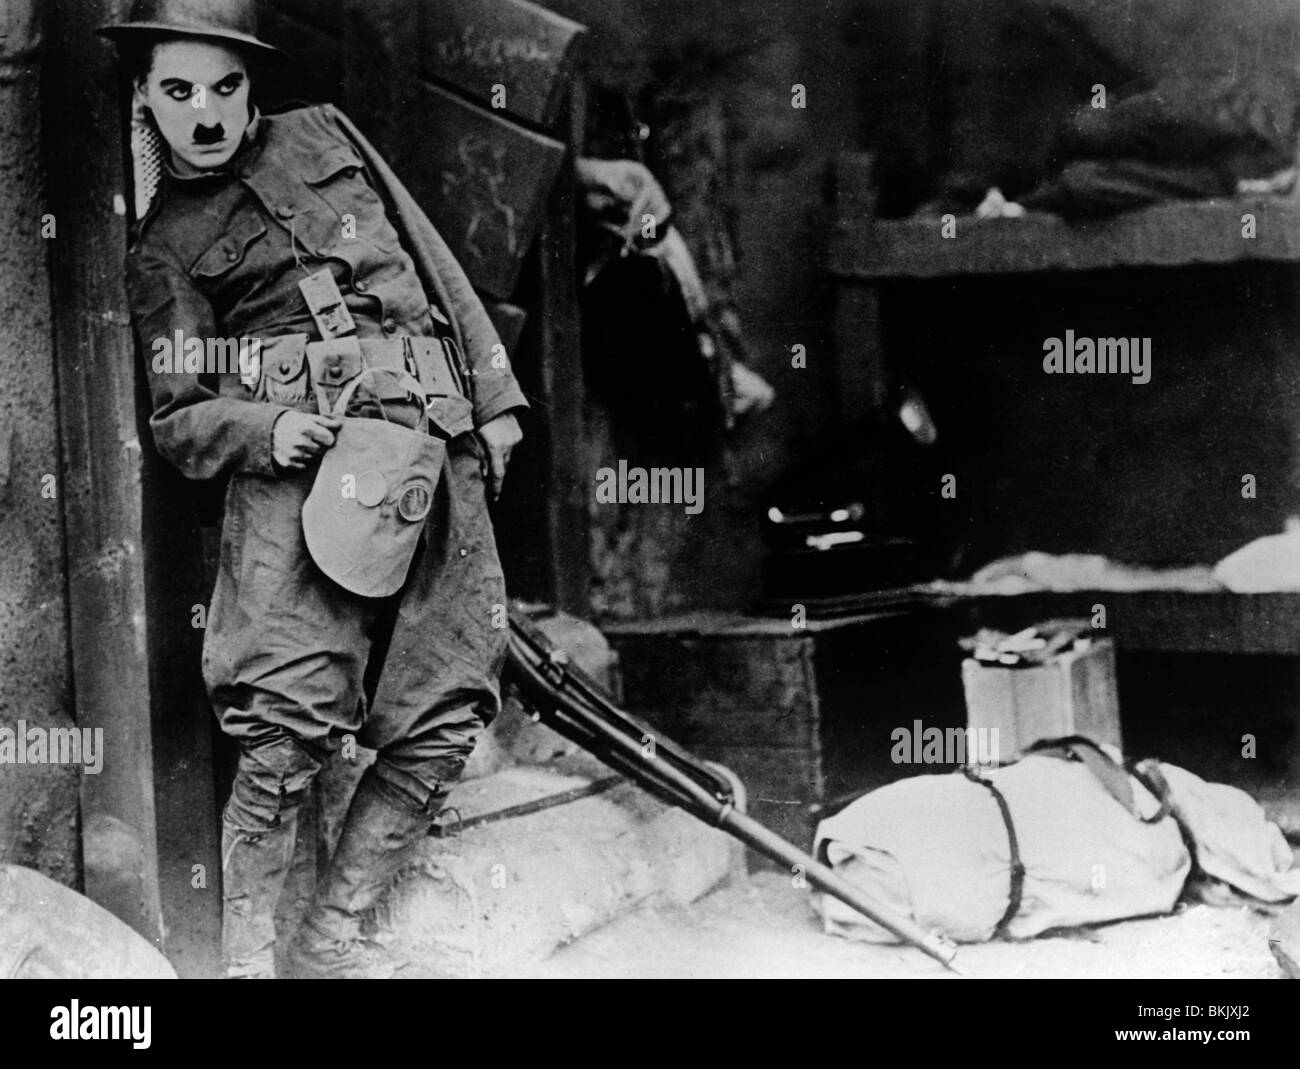 SHOULDER ARMS (1918) CHARLIE CHAPLIN SAMS 003P - Stock Image